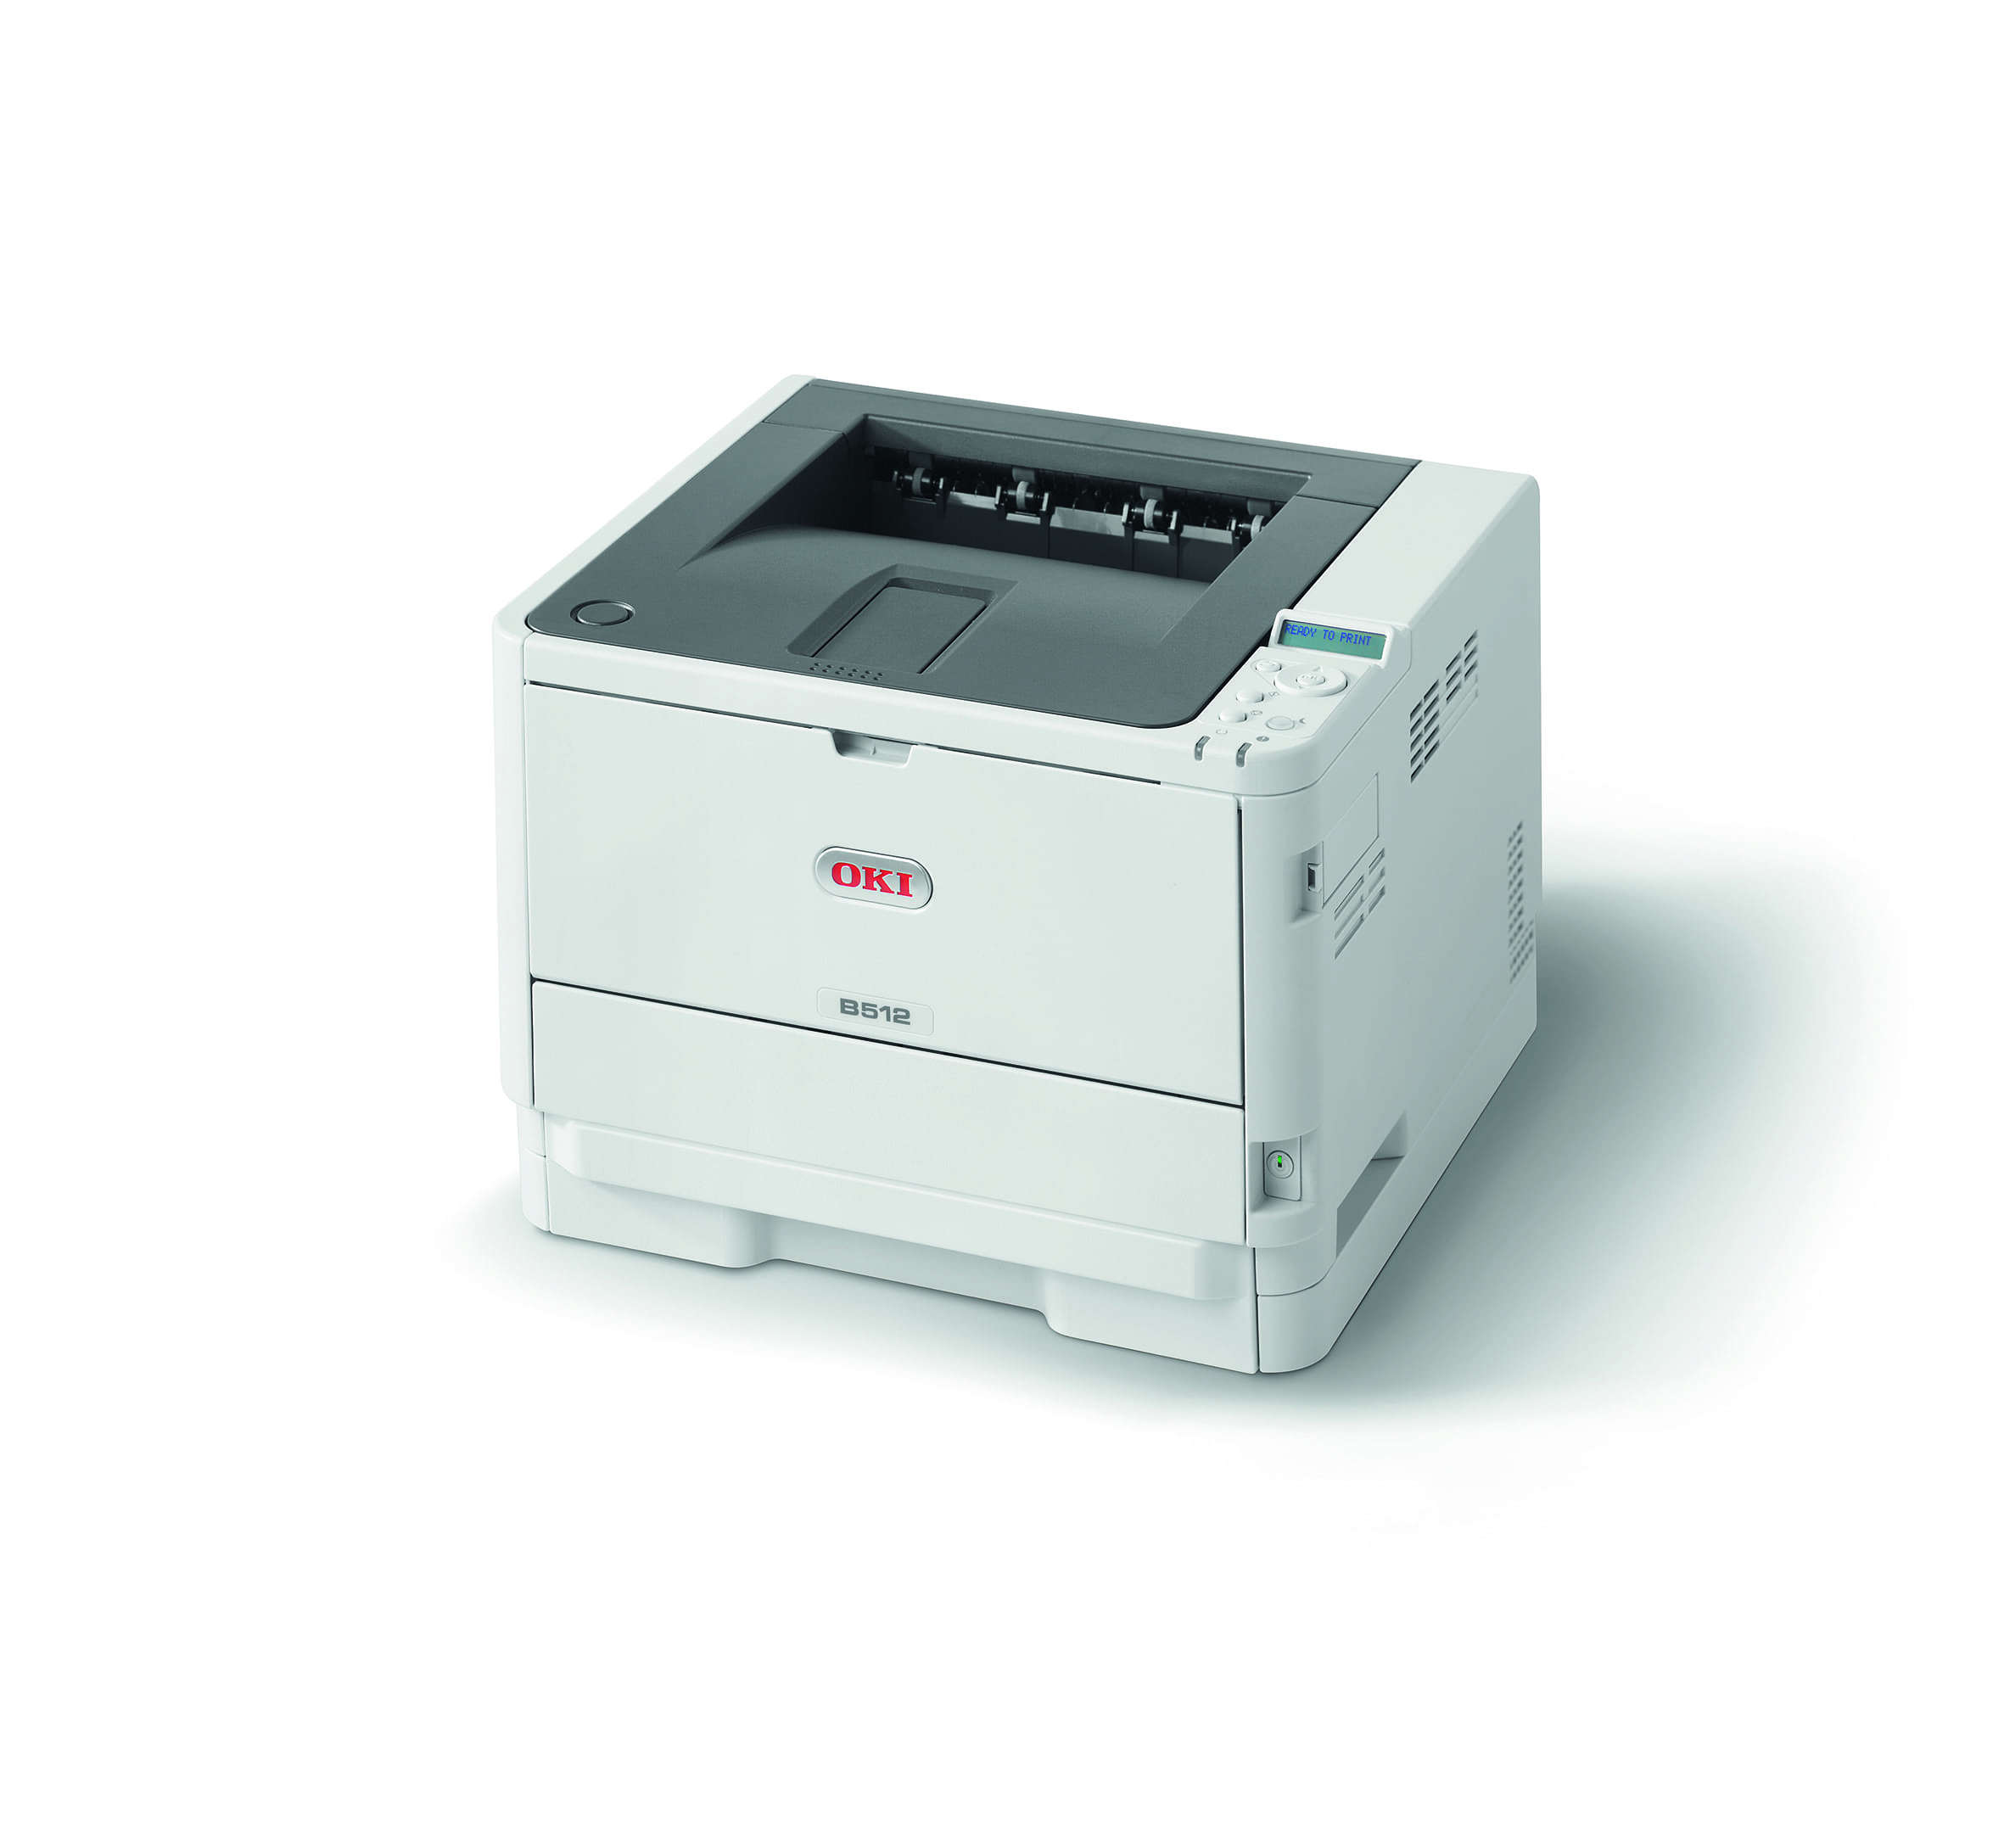 OKI B512 Mono Printer Accessories